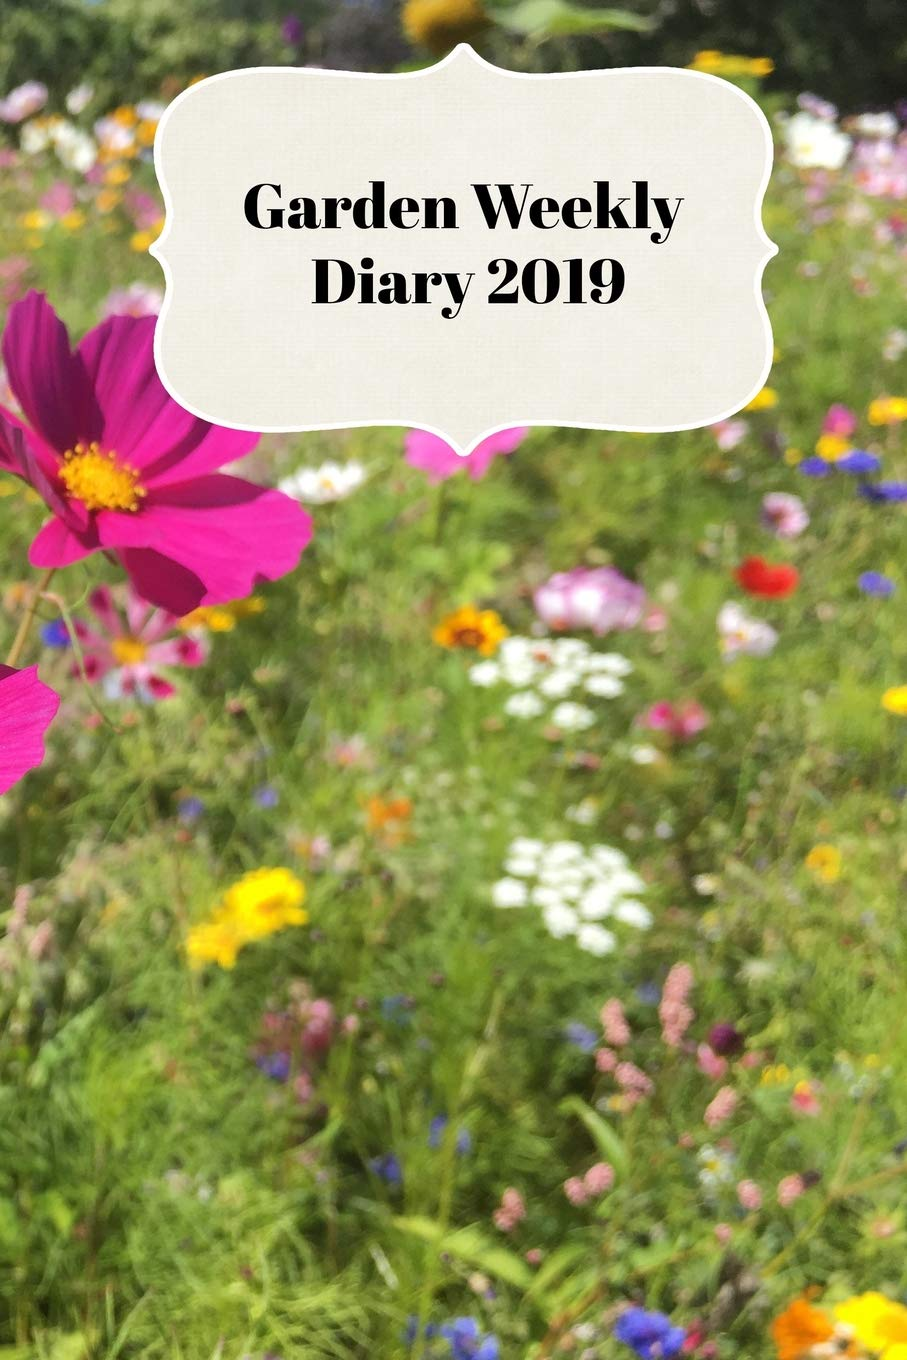 Garden Weekly Diary 2019 With Weekly Scheduling And Monthly